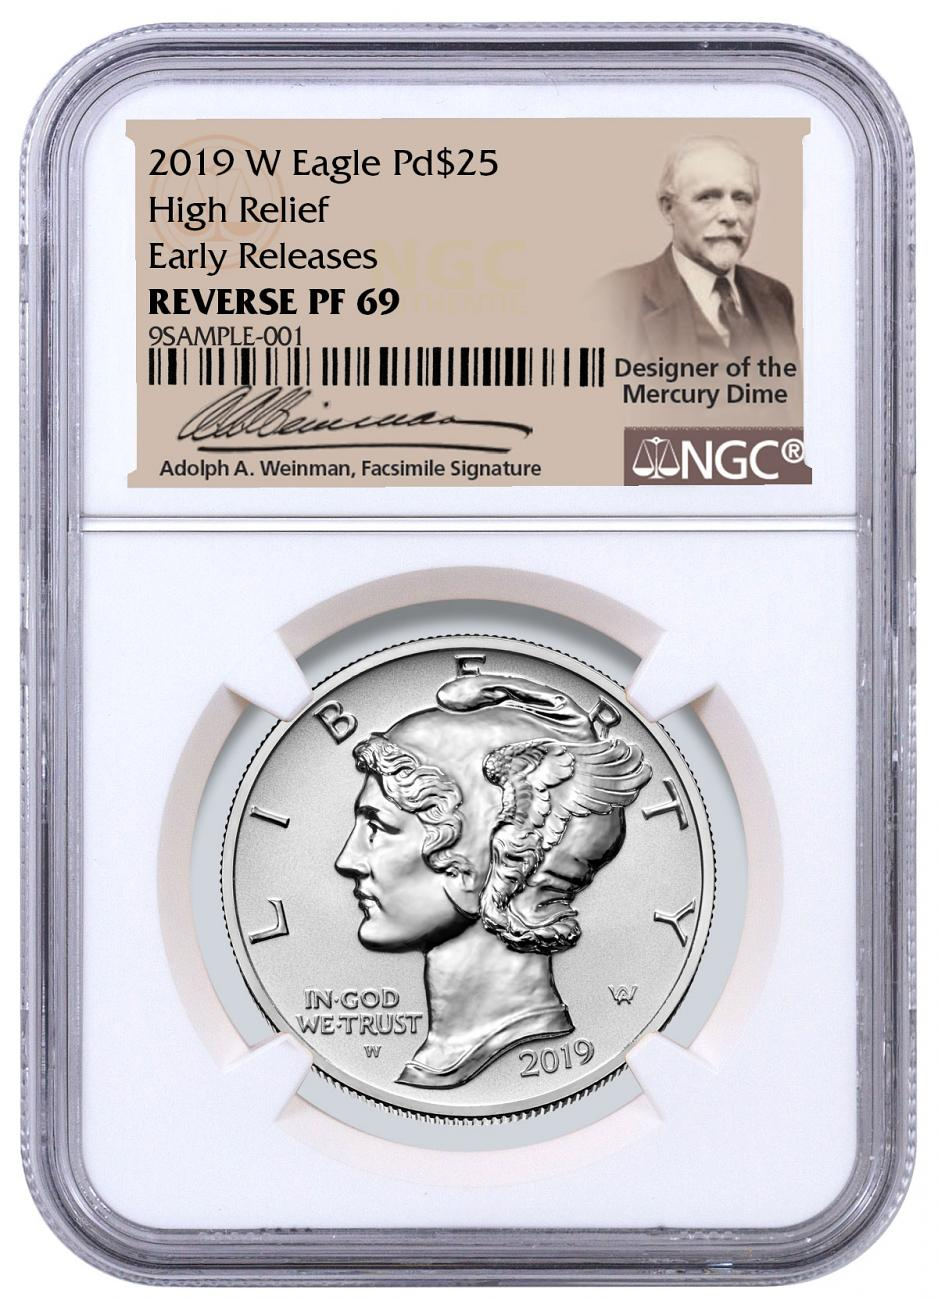 2019-W 1 oz High Relief Palladium Eagle Reverse Proof $25 Coin NGC PF69 ER Adolph Weinman Label